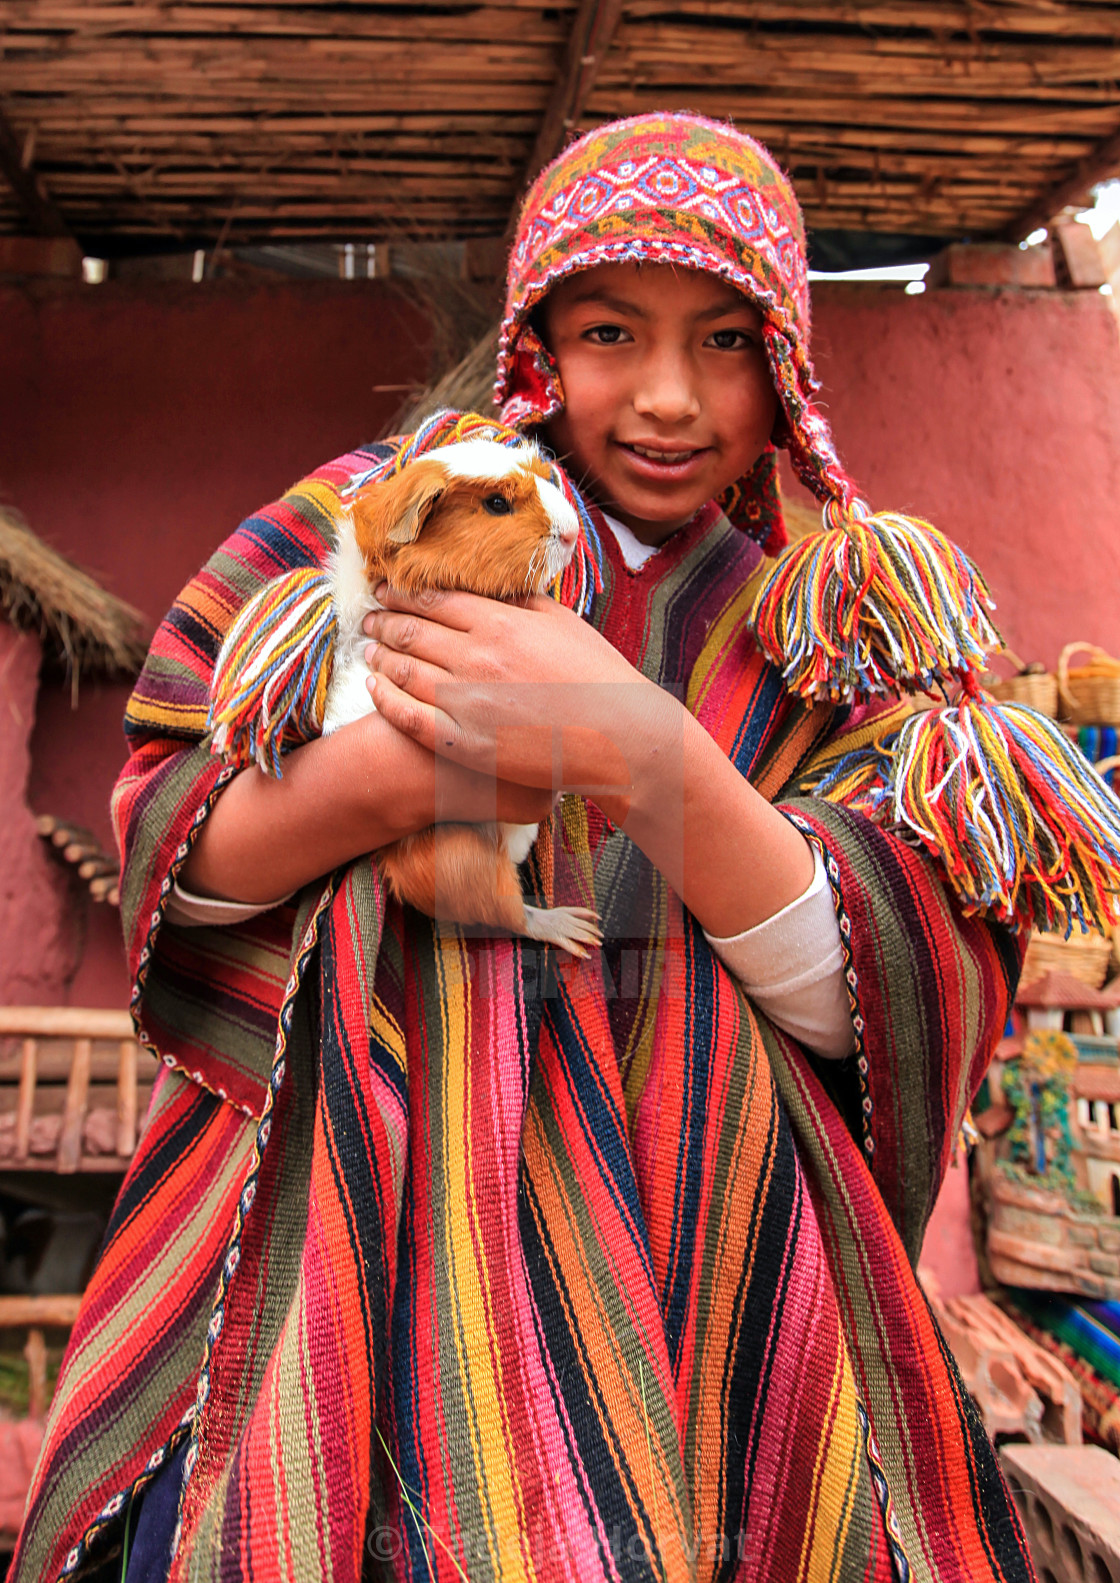 """Young Peruvian boy in traditional dress"" stock image"